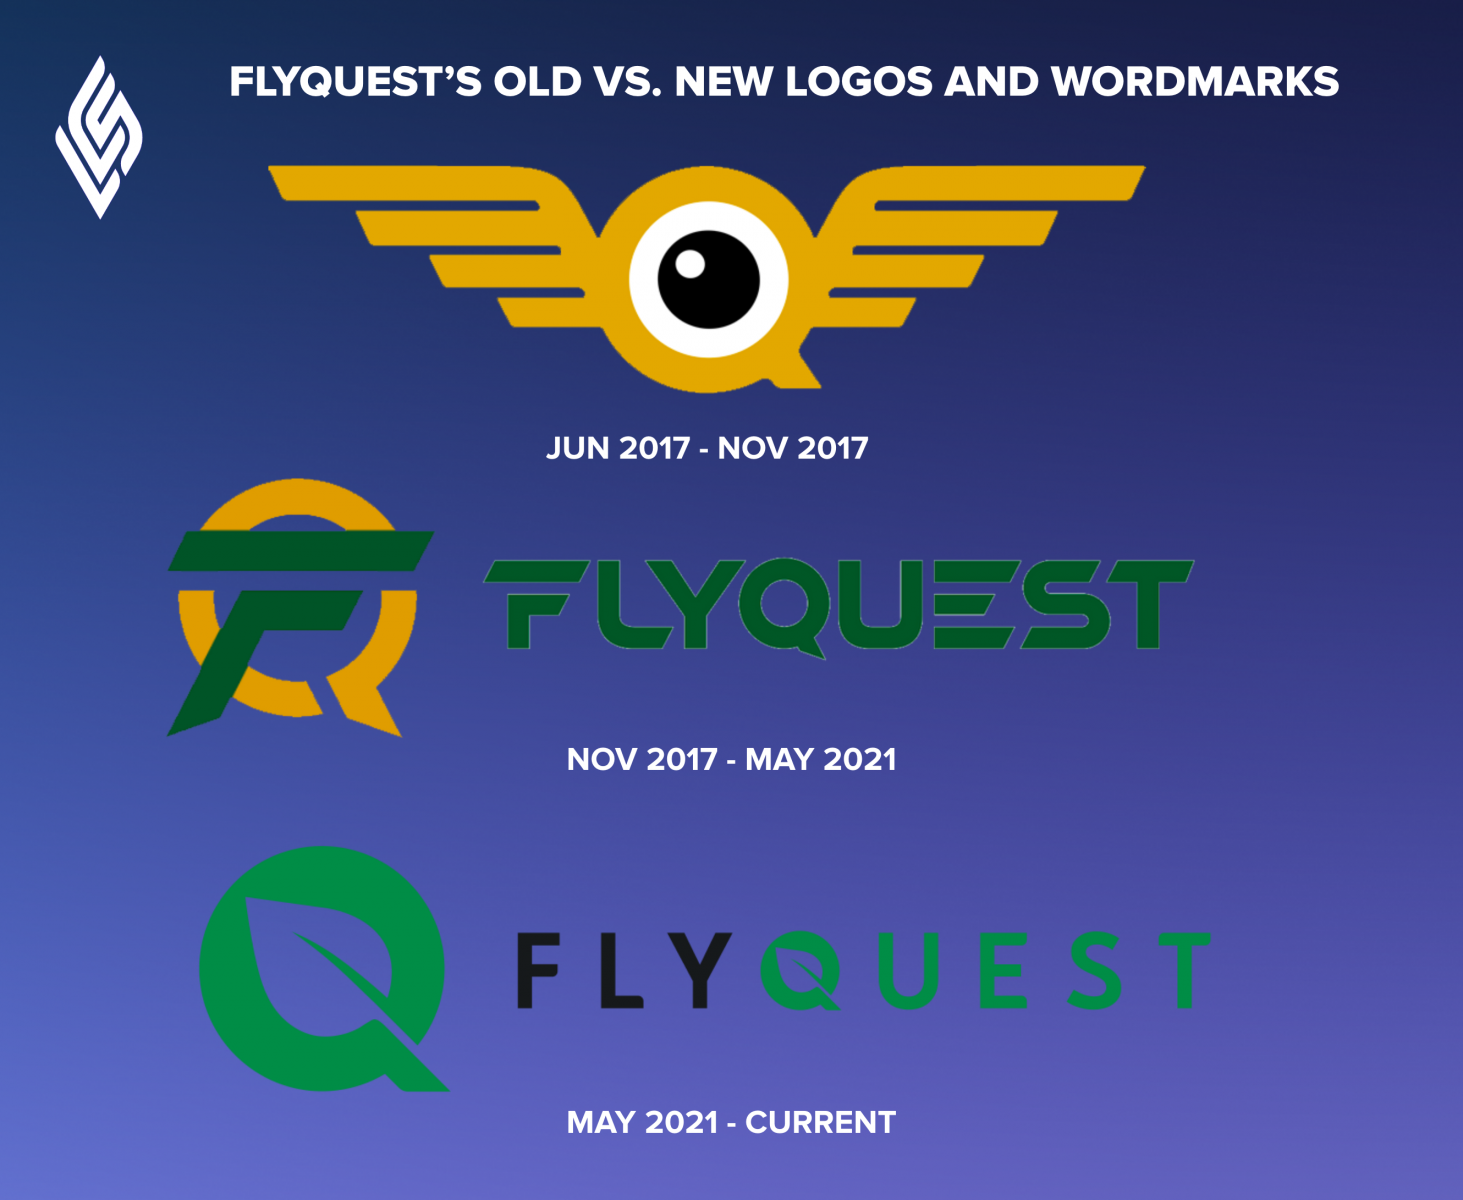 FLYQUEST'S OLD VS. NEW LOGOS AND WORDMARKS